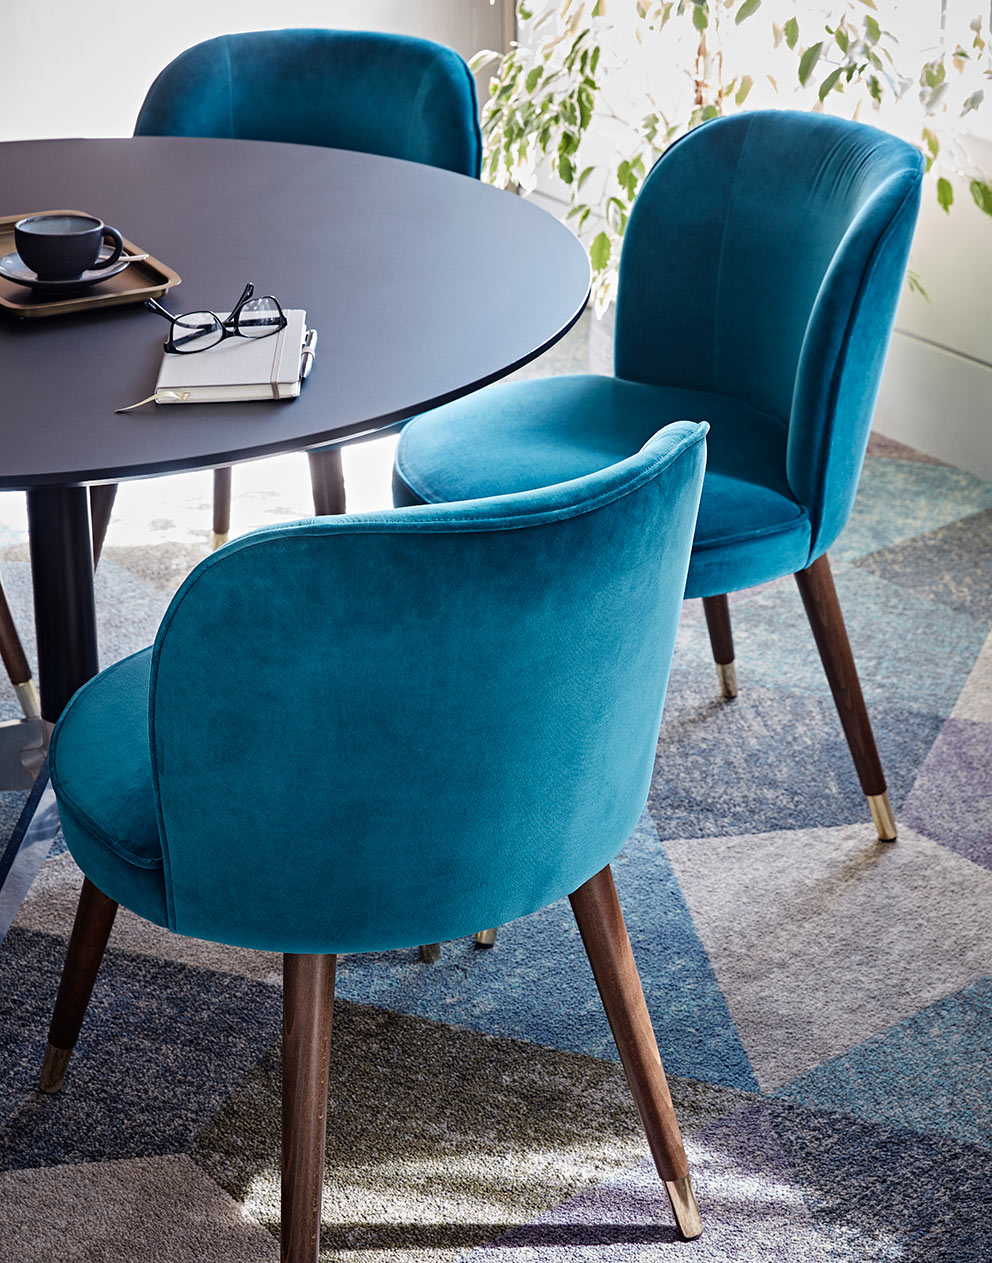 Really Useful Group London HQ velvet chairs